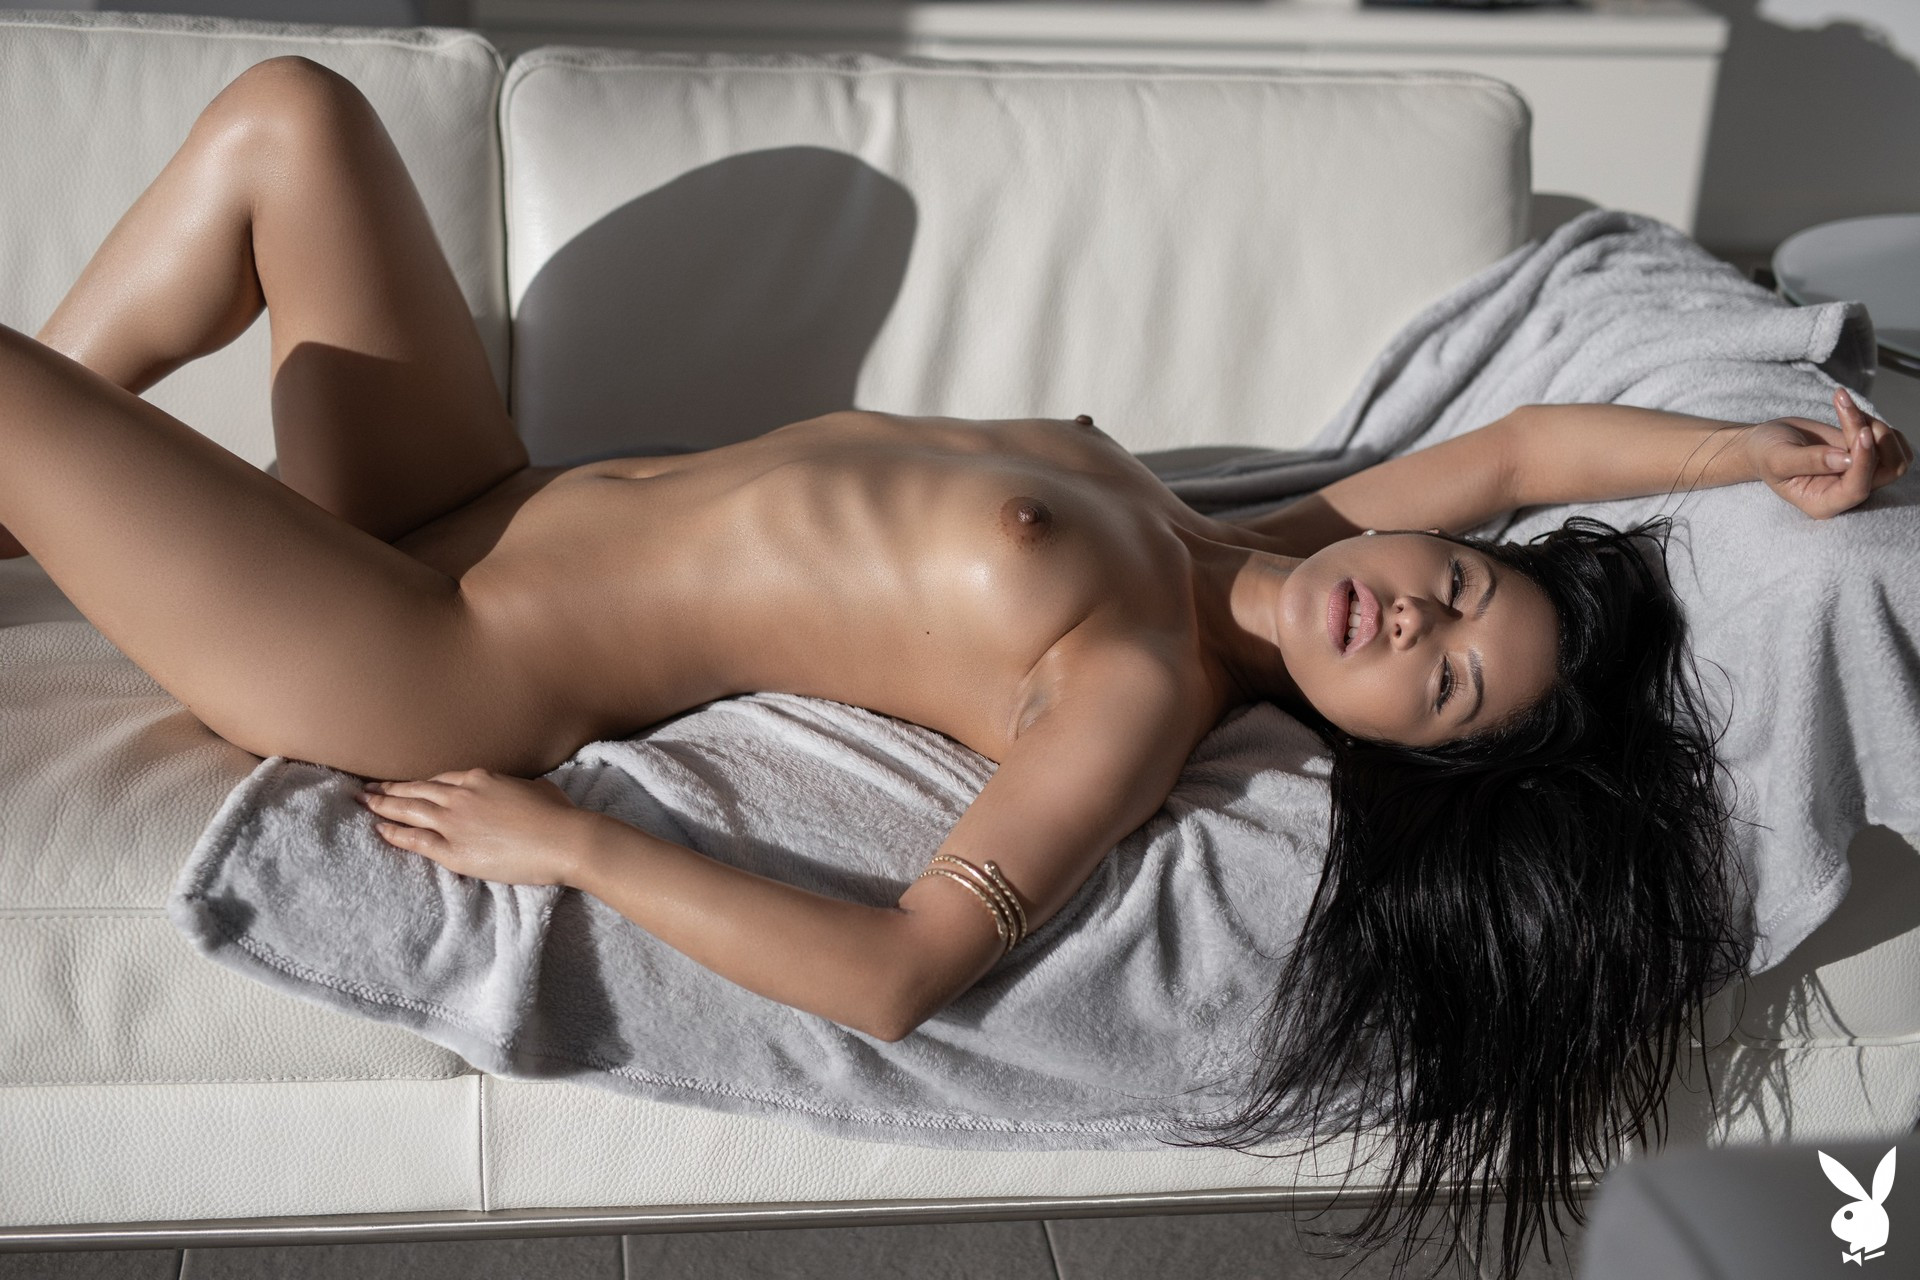 Chloe Rose In Exquisite View Playboy Plus (24)